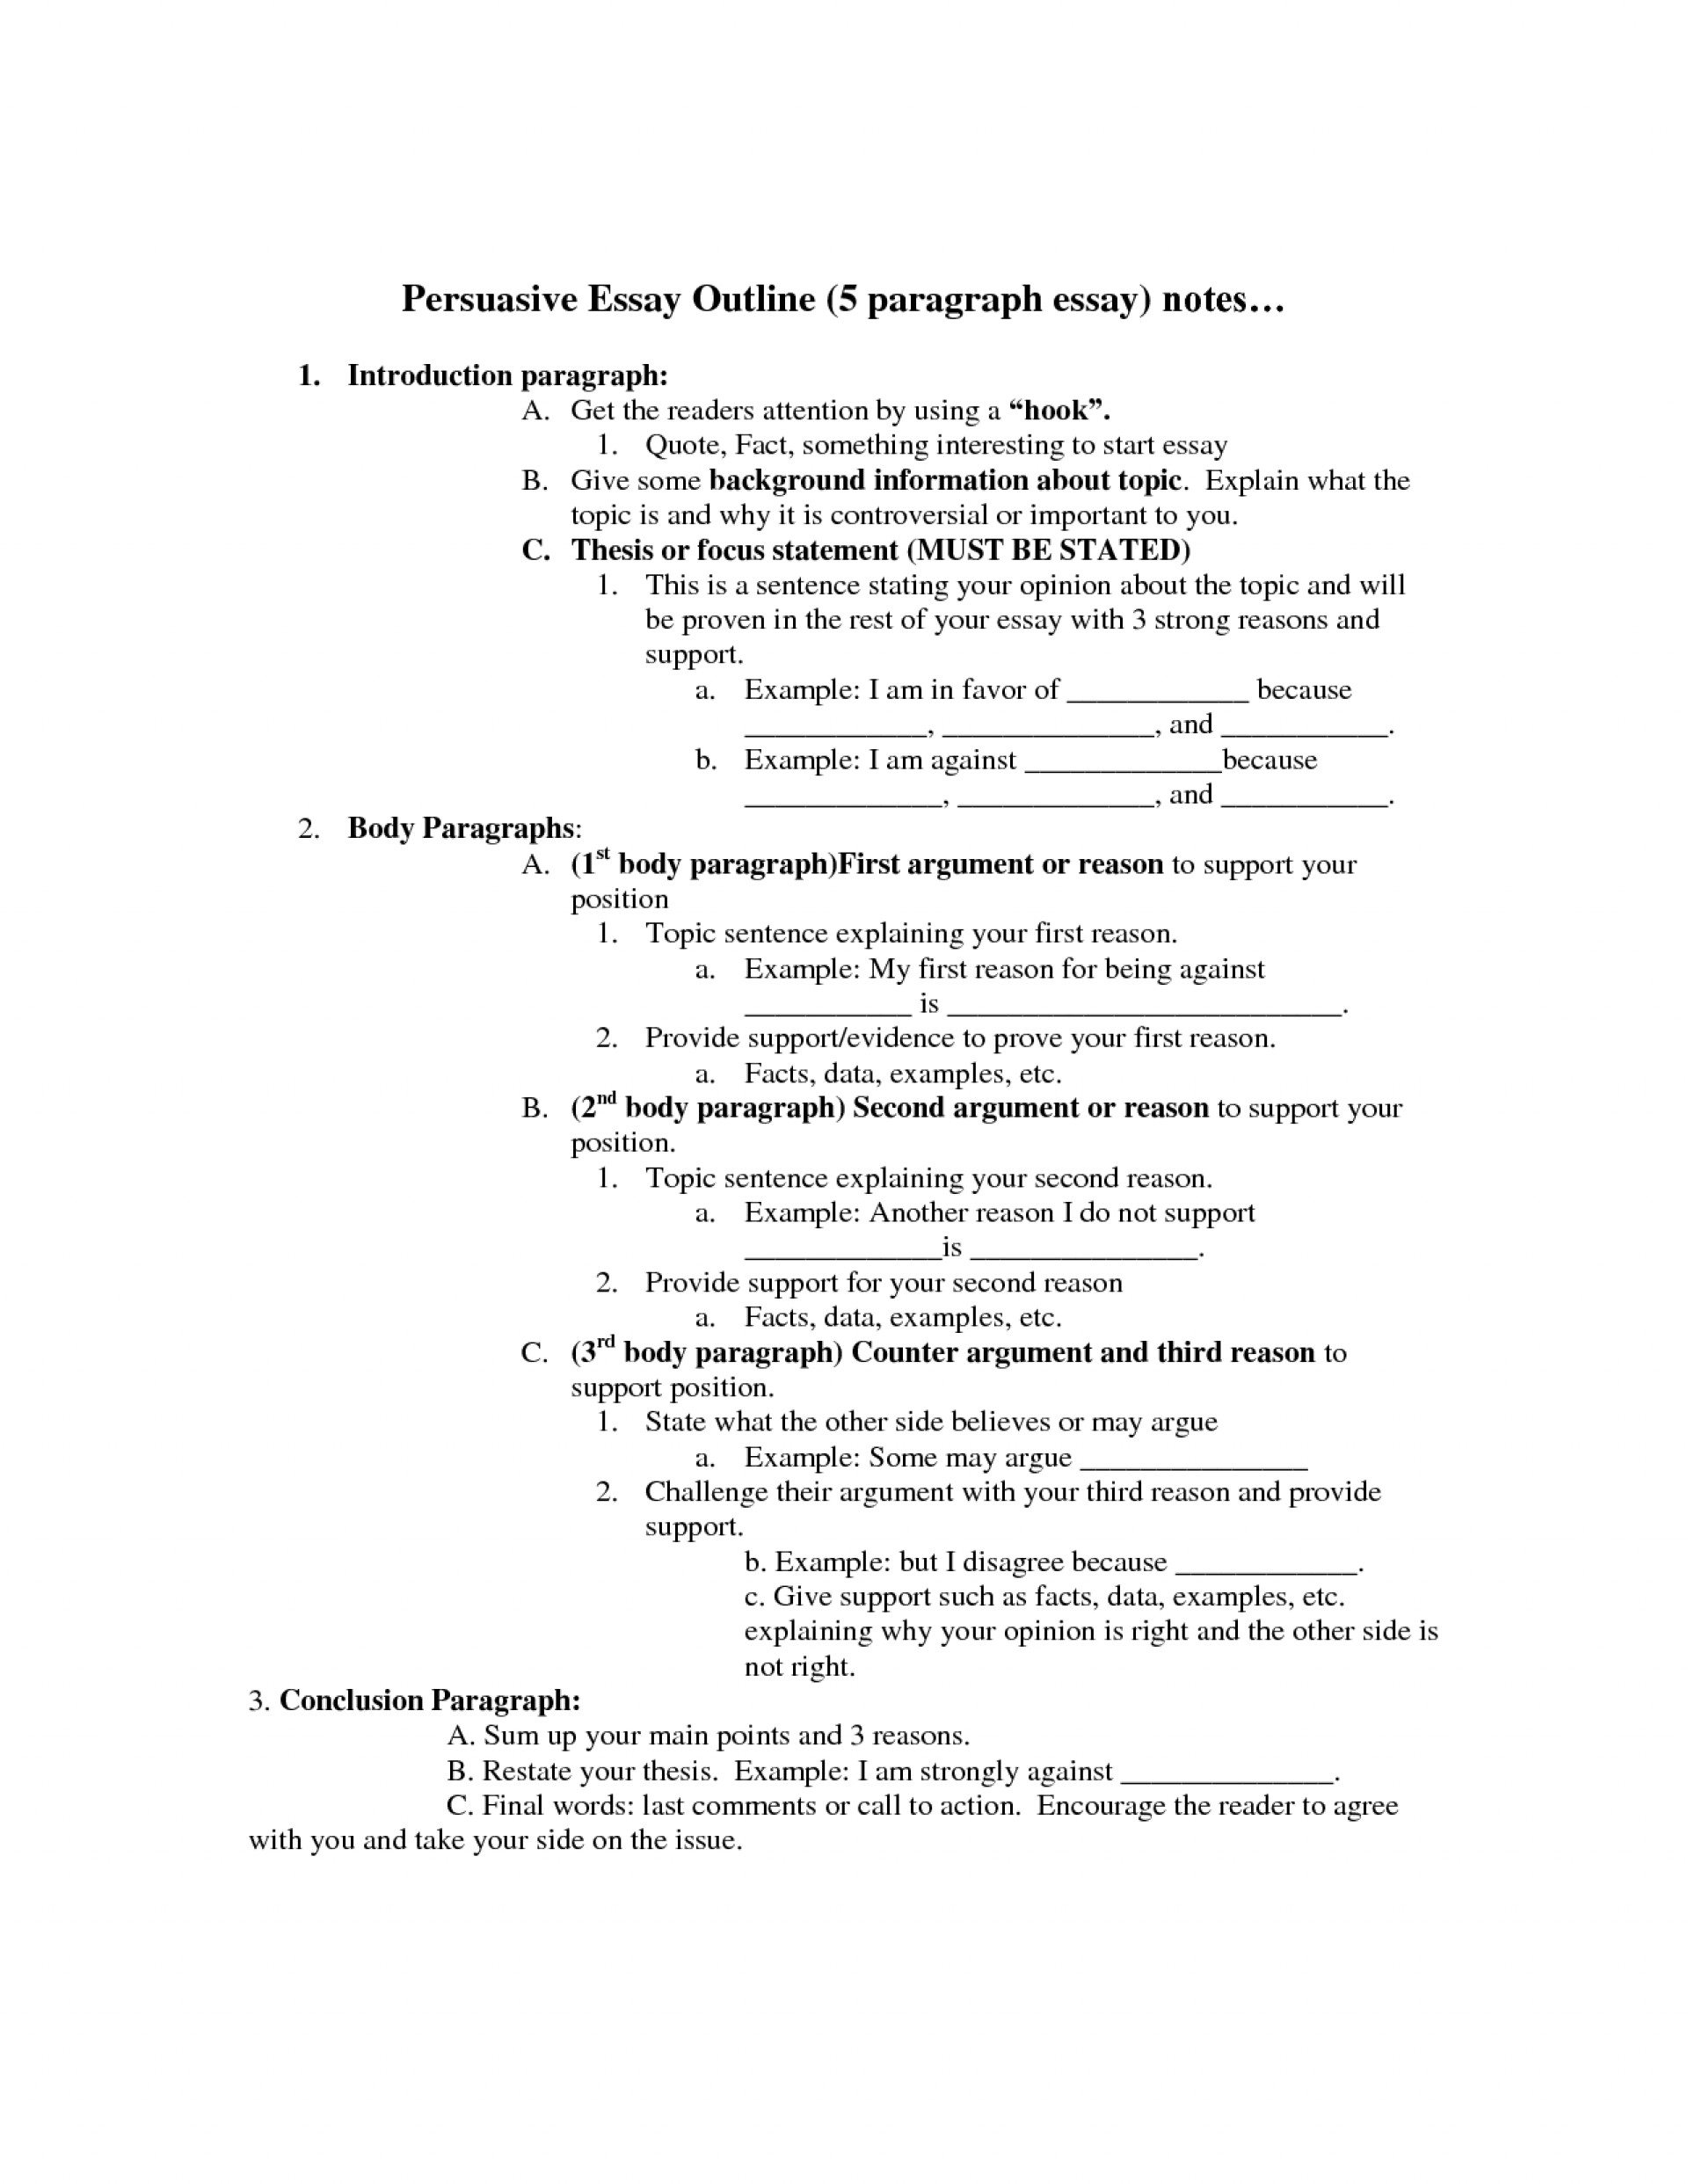 006 Persuasive Essay Outline Unbelievable 5 Paragraph Template Worksheet Pdf 1920